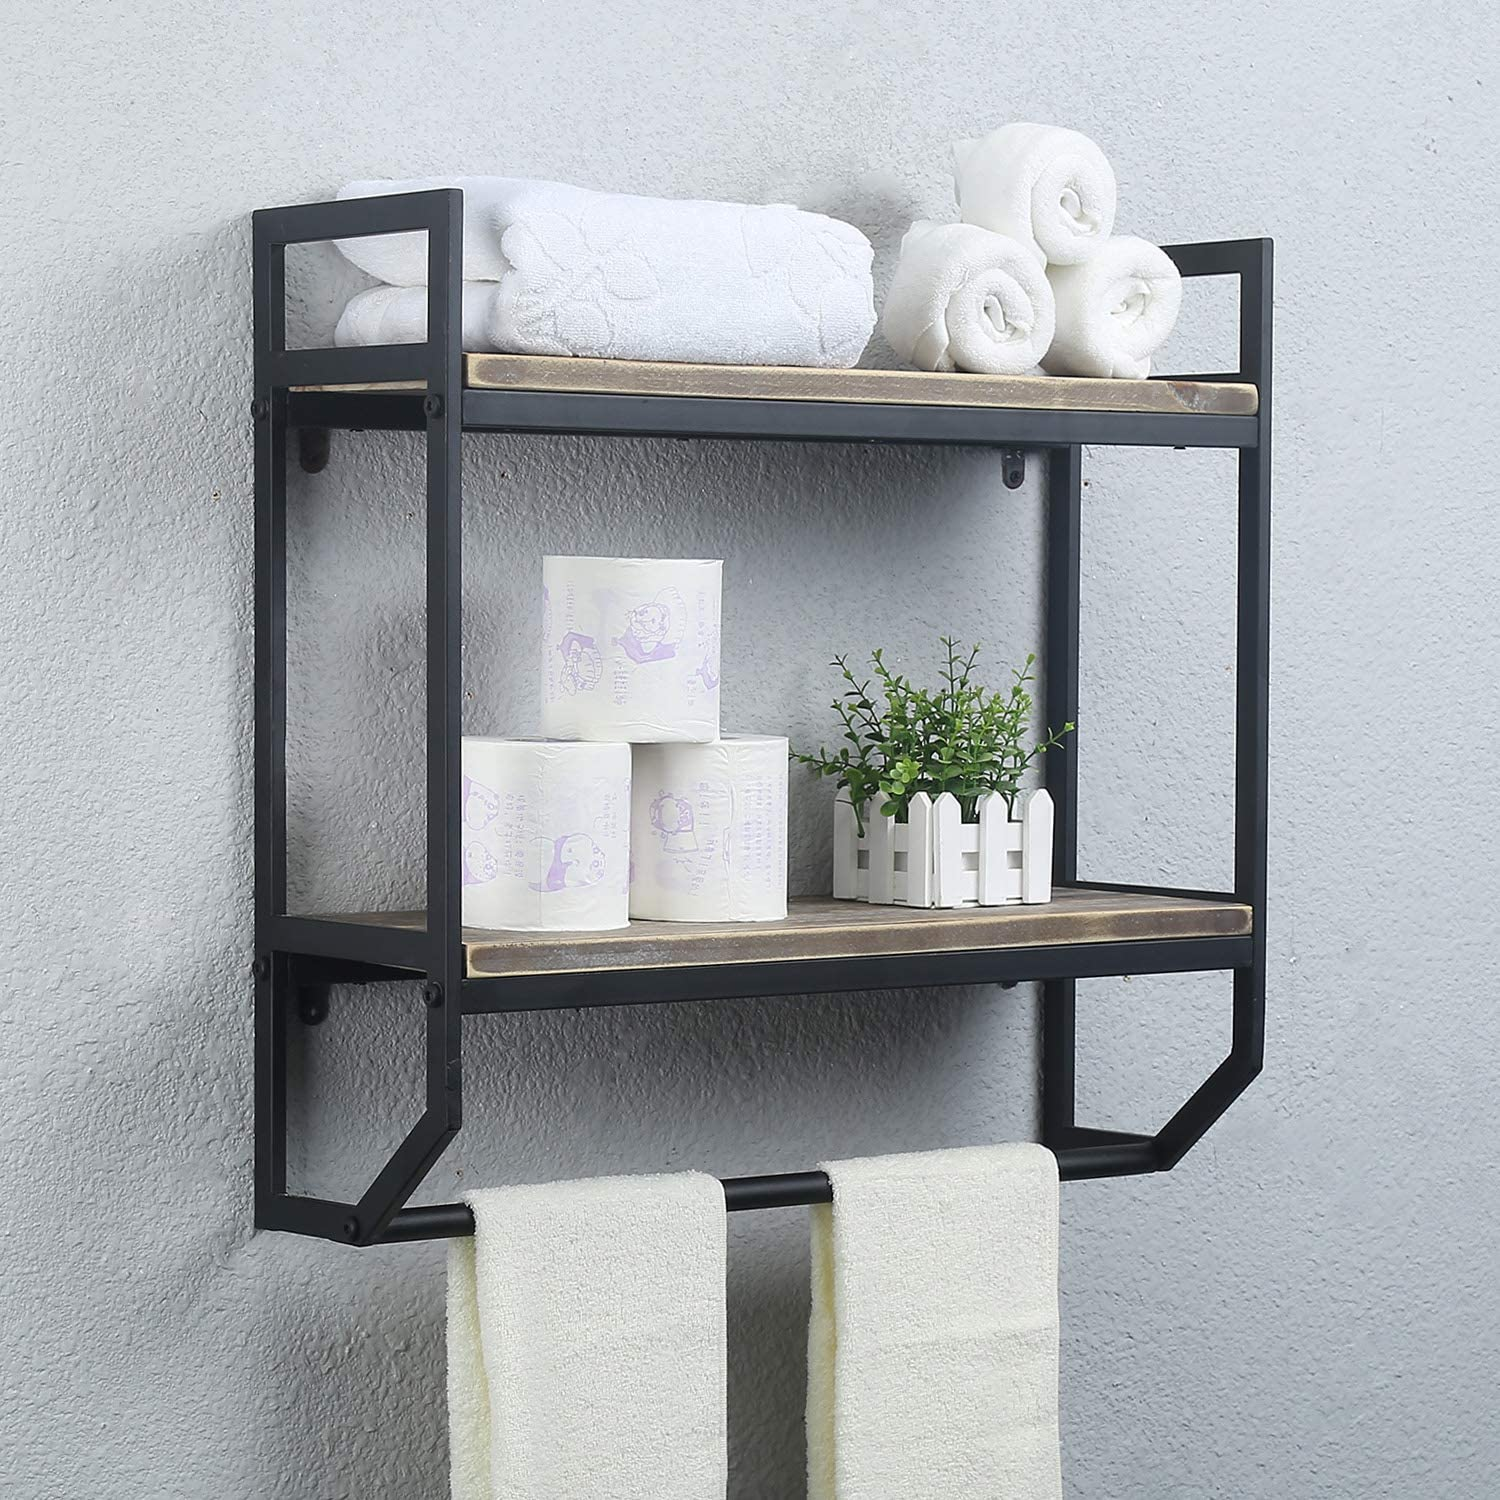 Industrial Over the Toilet Storage Idea